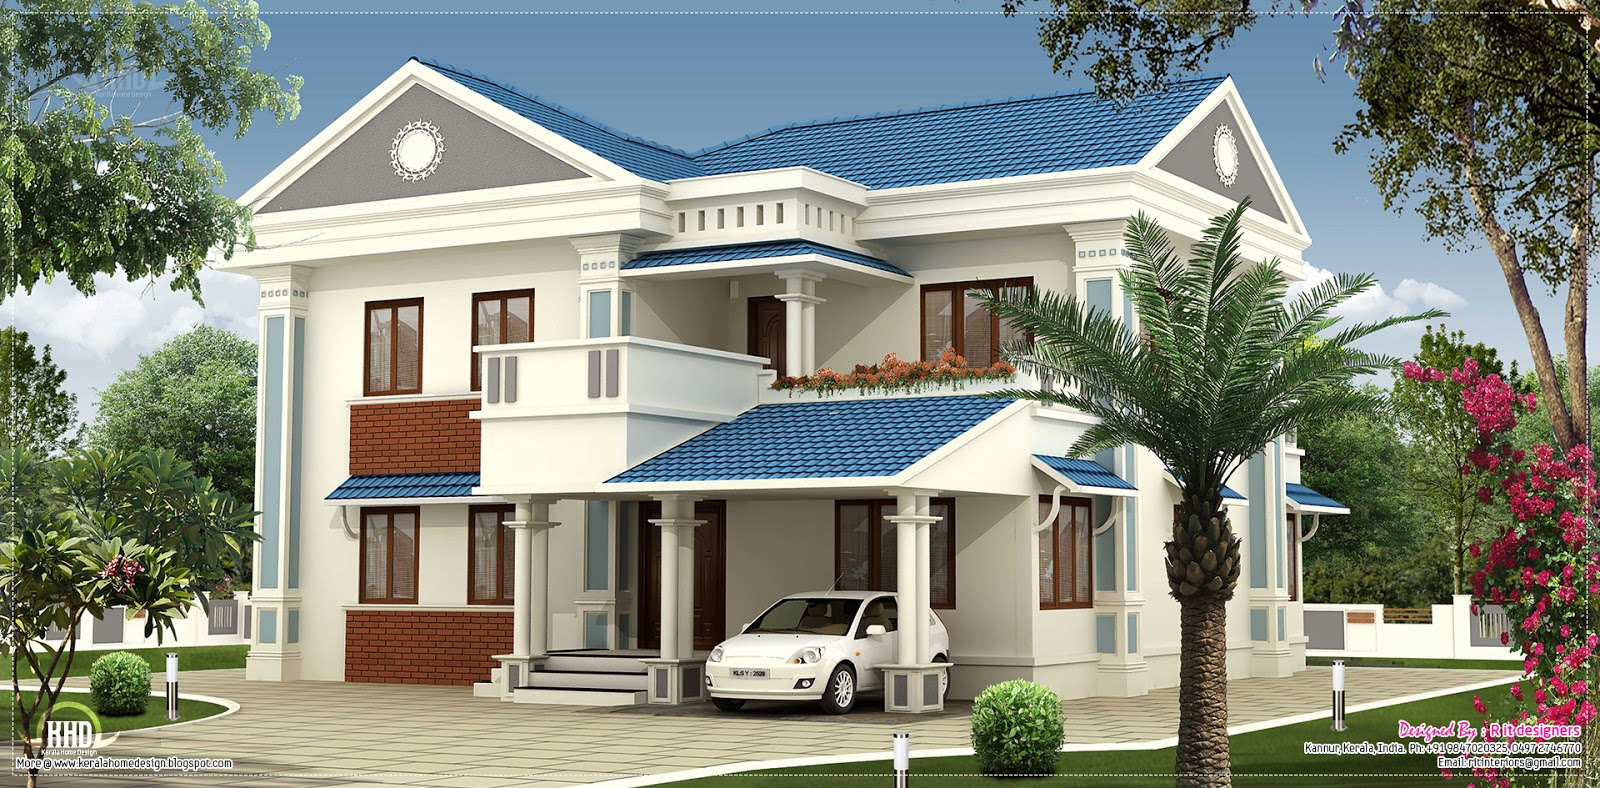 Nice Home Designs #19937 Hd Wallpapers Background ...